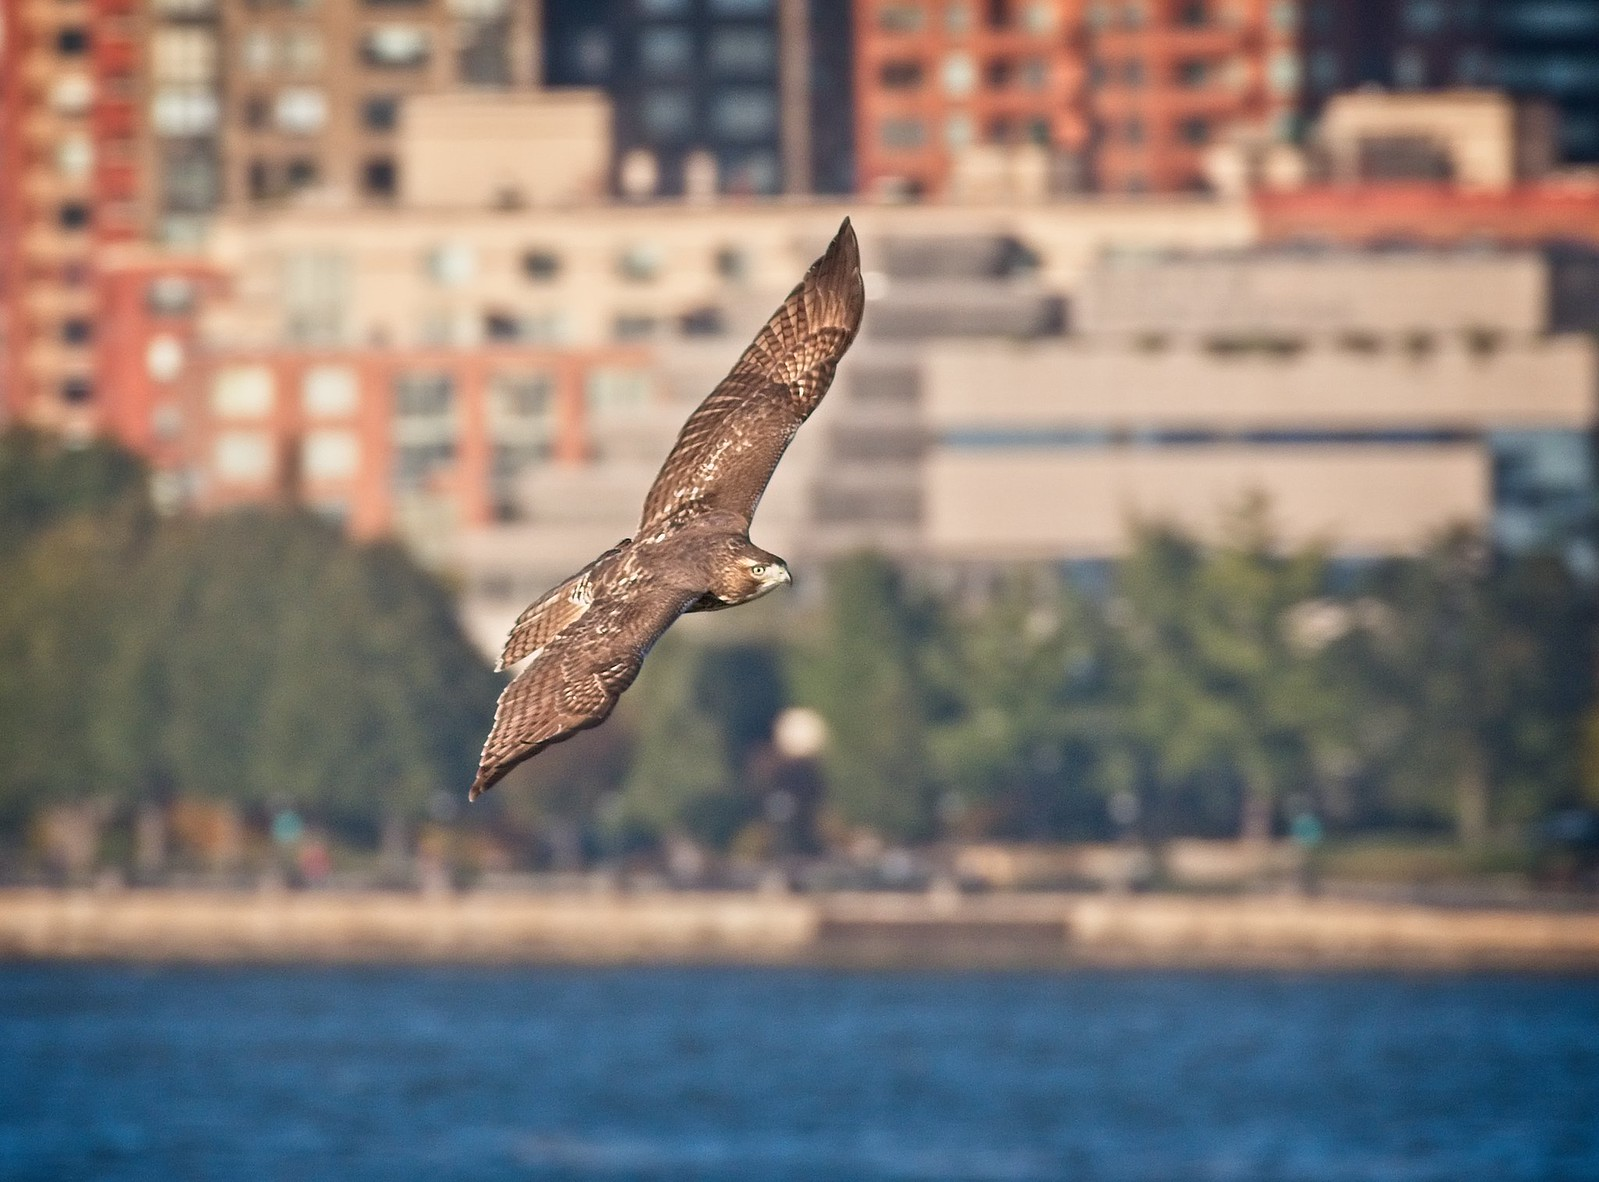 Red-tail flying along Battery Park